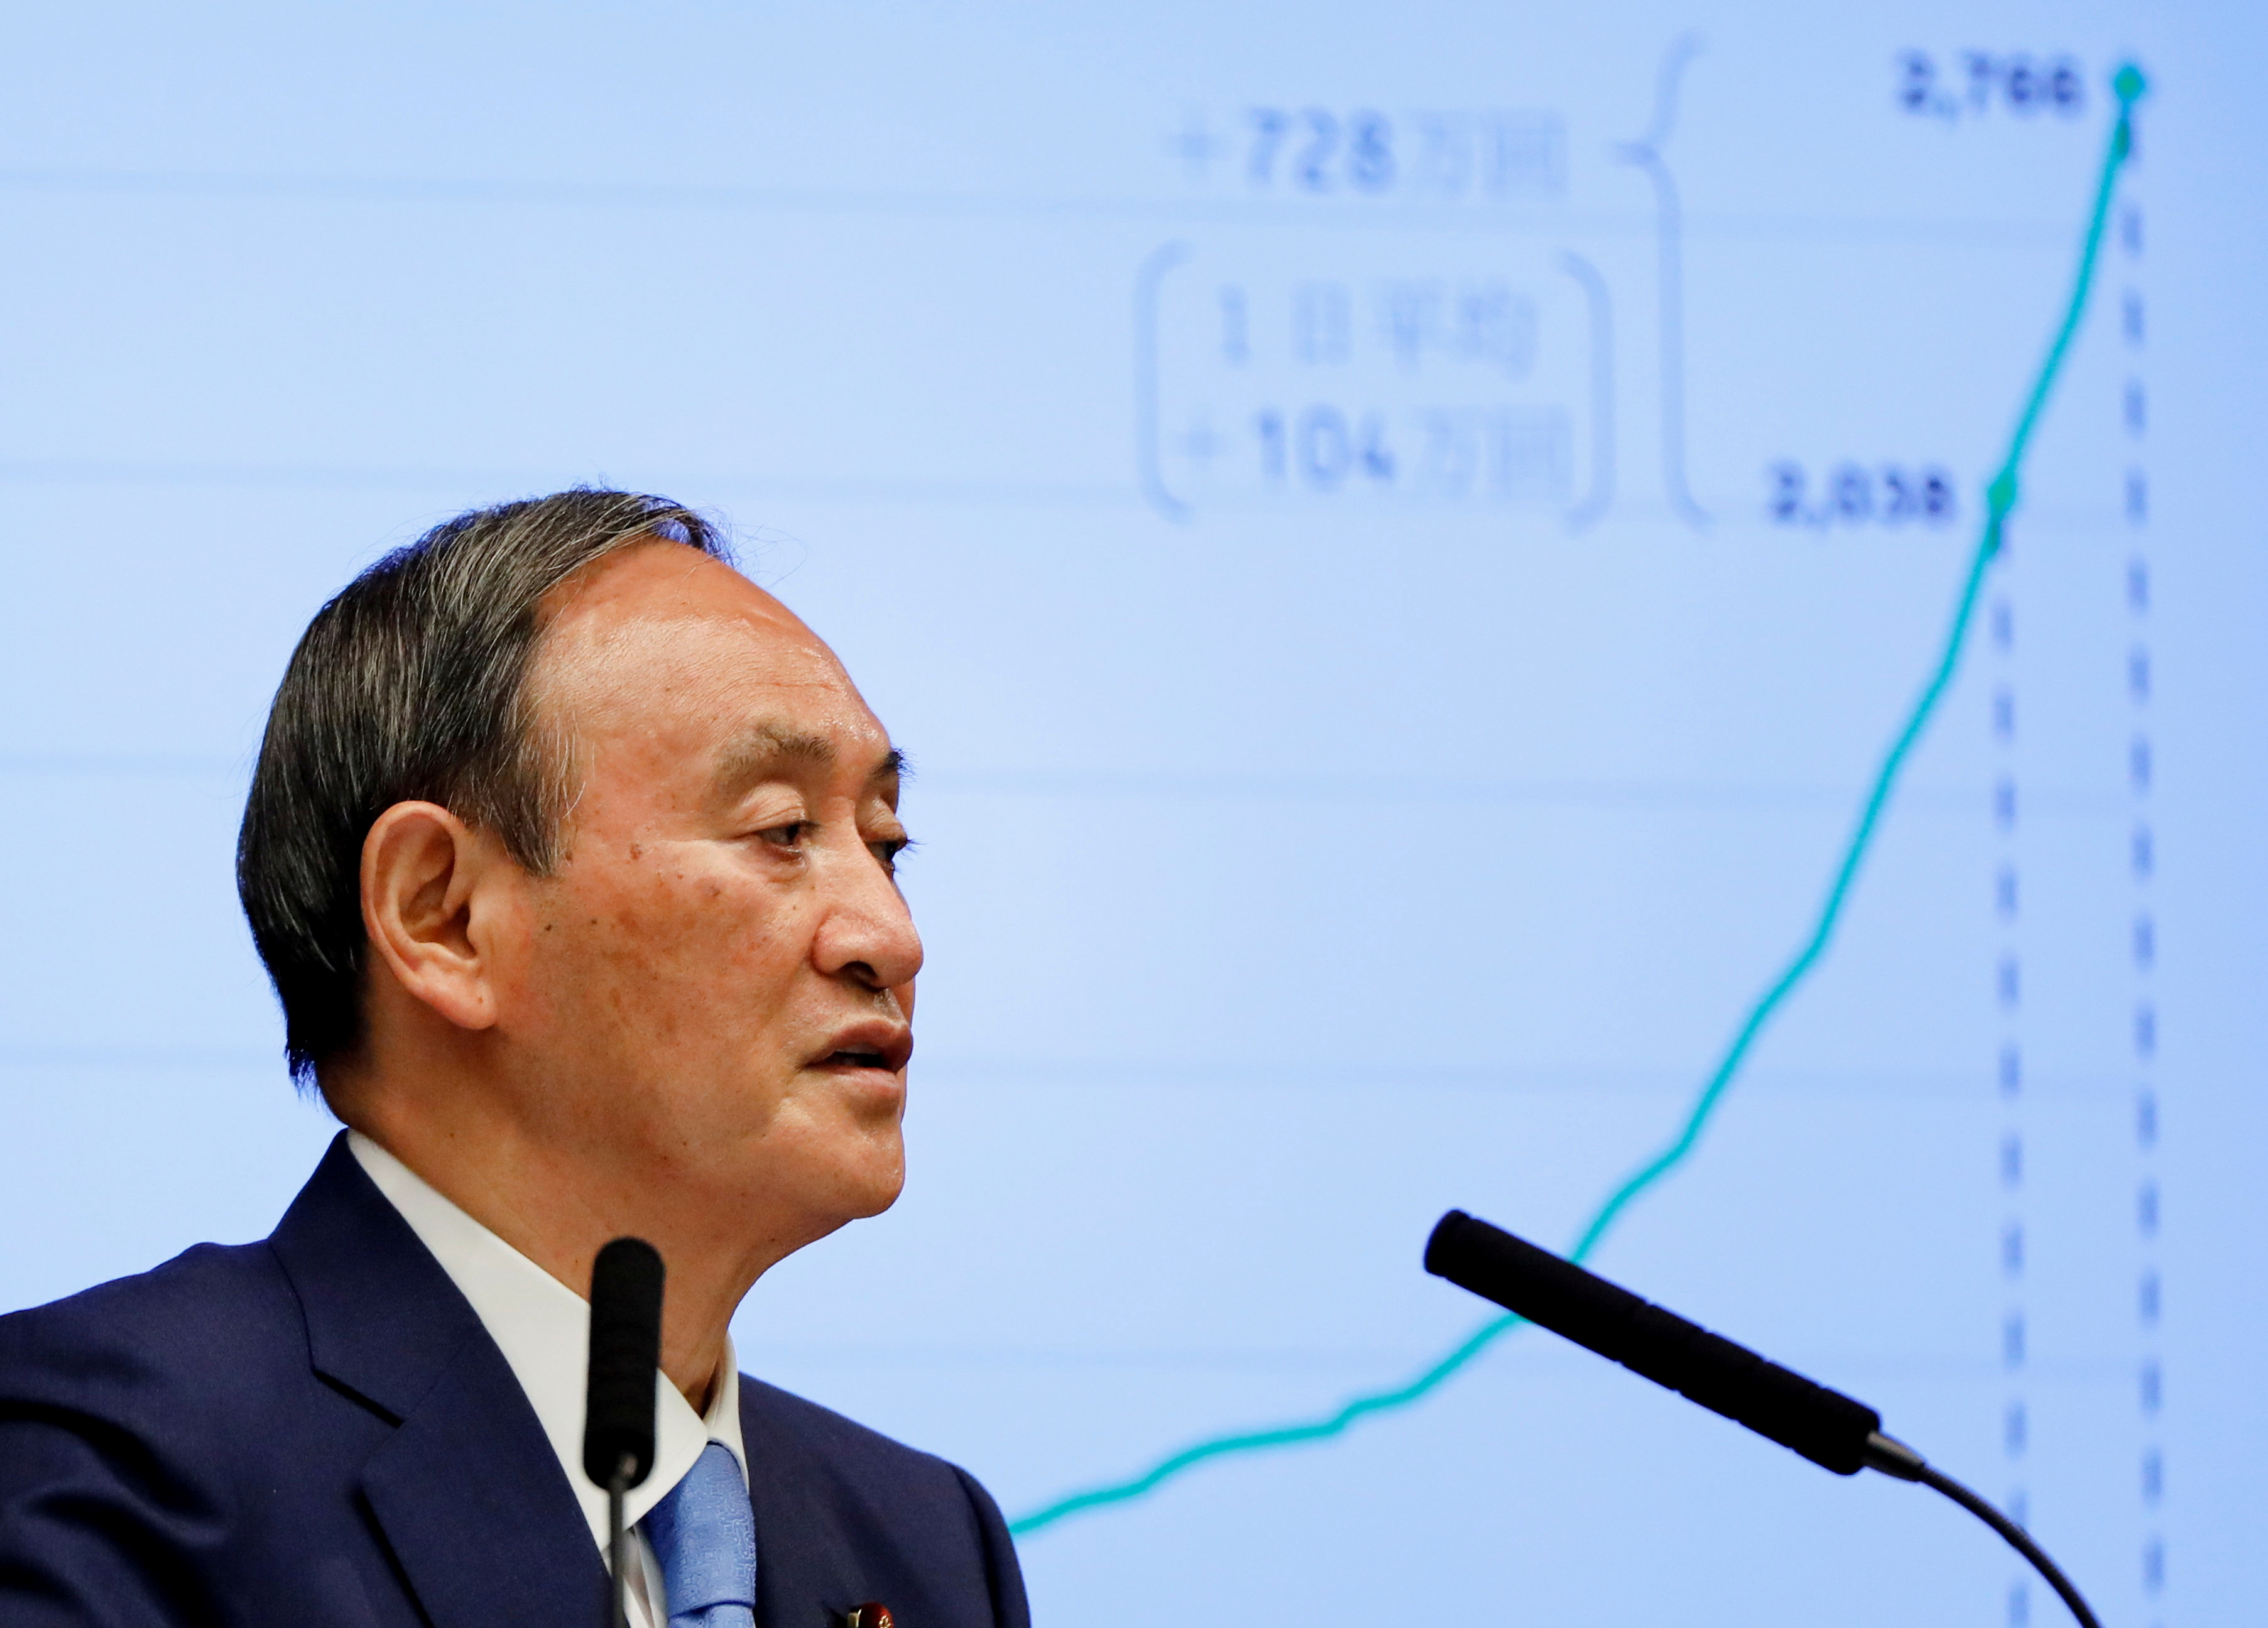 Japanese Prime Minister Yoshihide Suga attends a news conference on Japan's response to the coronavirus disease (COVID-19) outbreak, at his official residence in Tokyo, Japan, June 17, 2021. REUTERS/Issei Kato/Pool/File Photo